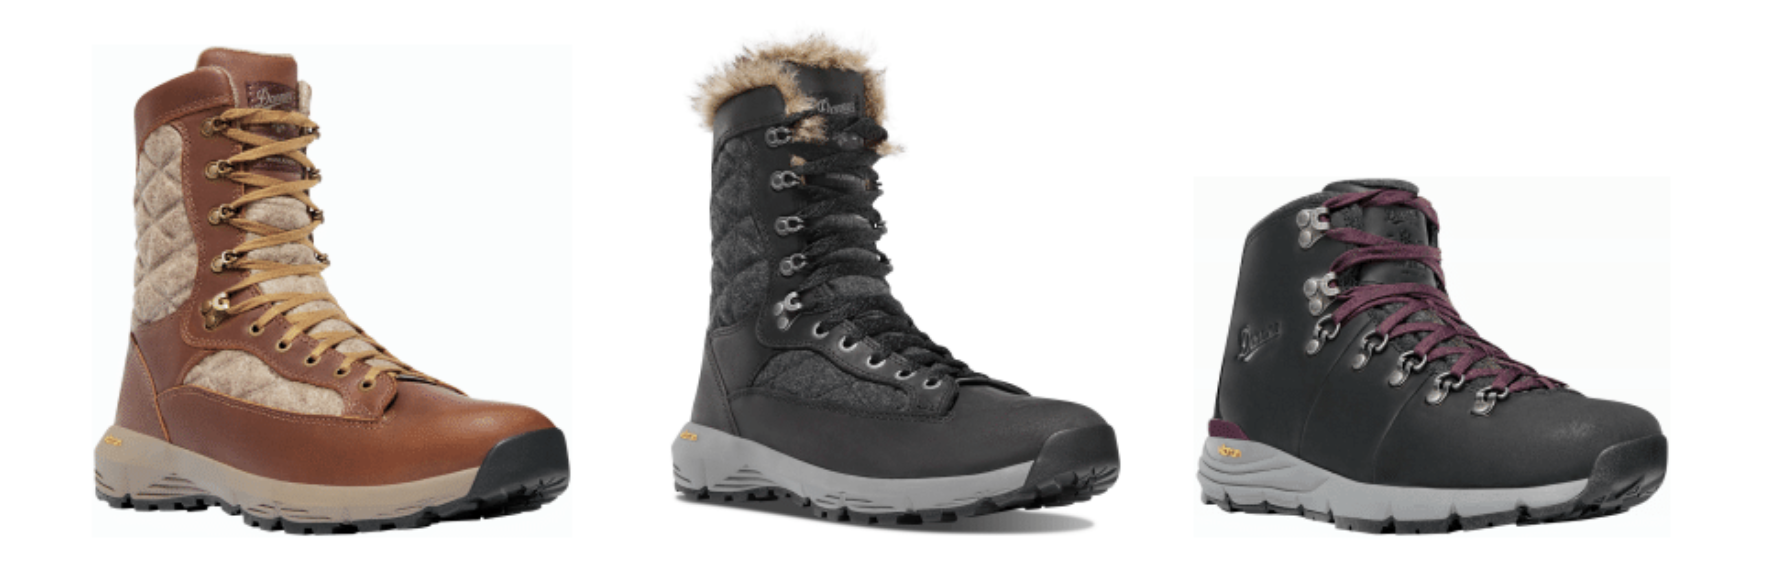 d7da5aa43e9 Mountain Tested Mondays: Danner Explorer 650 Hiking Boot